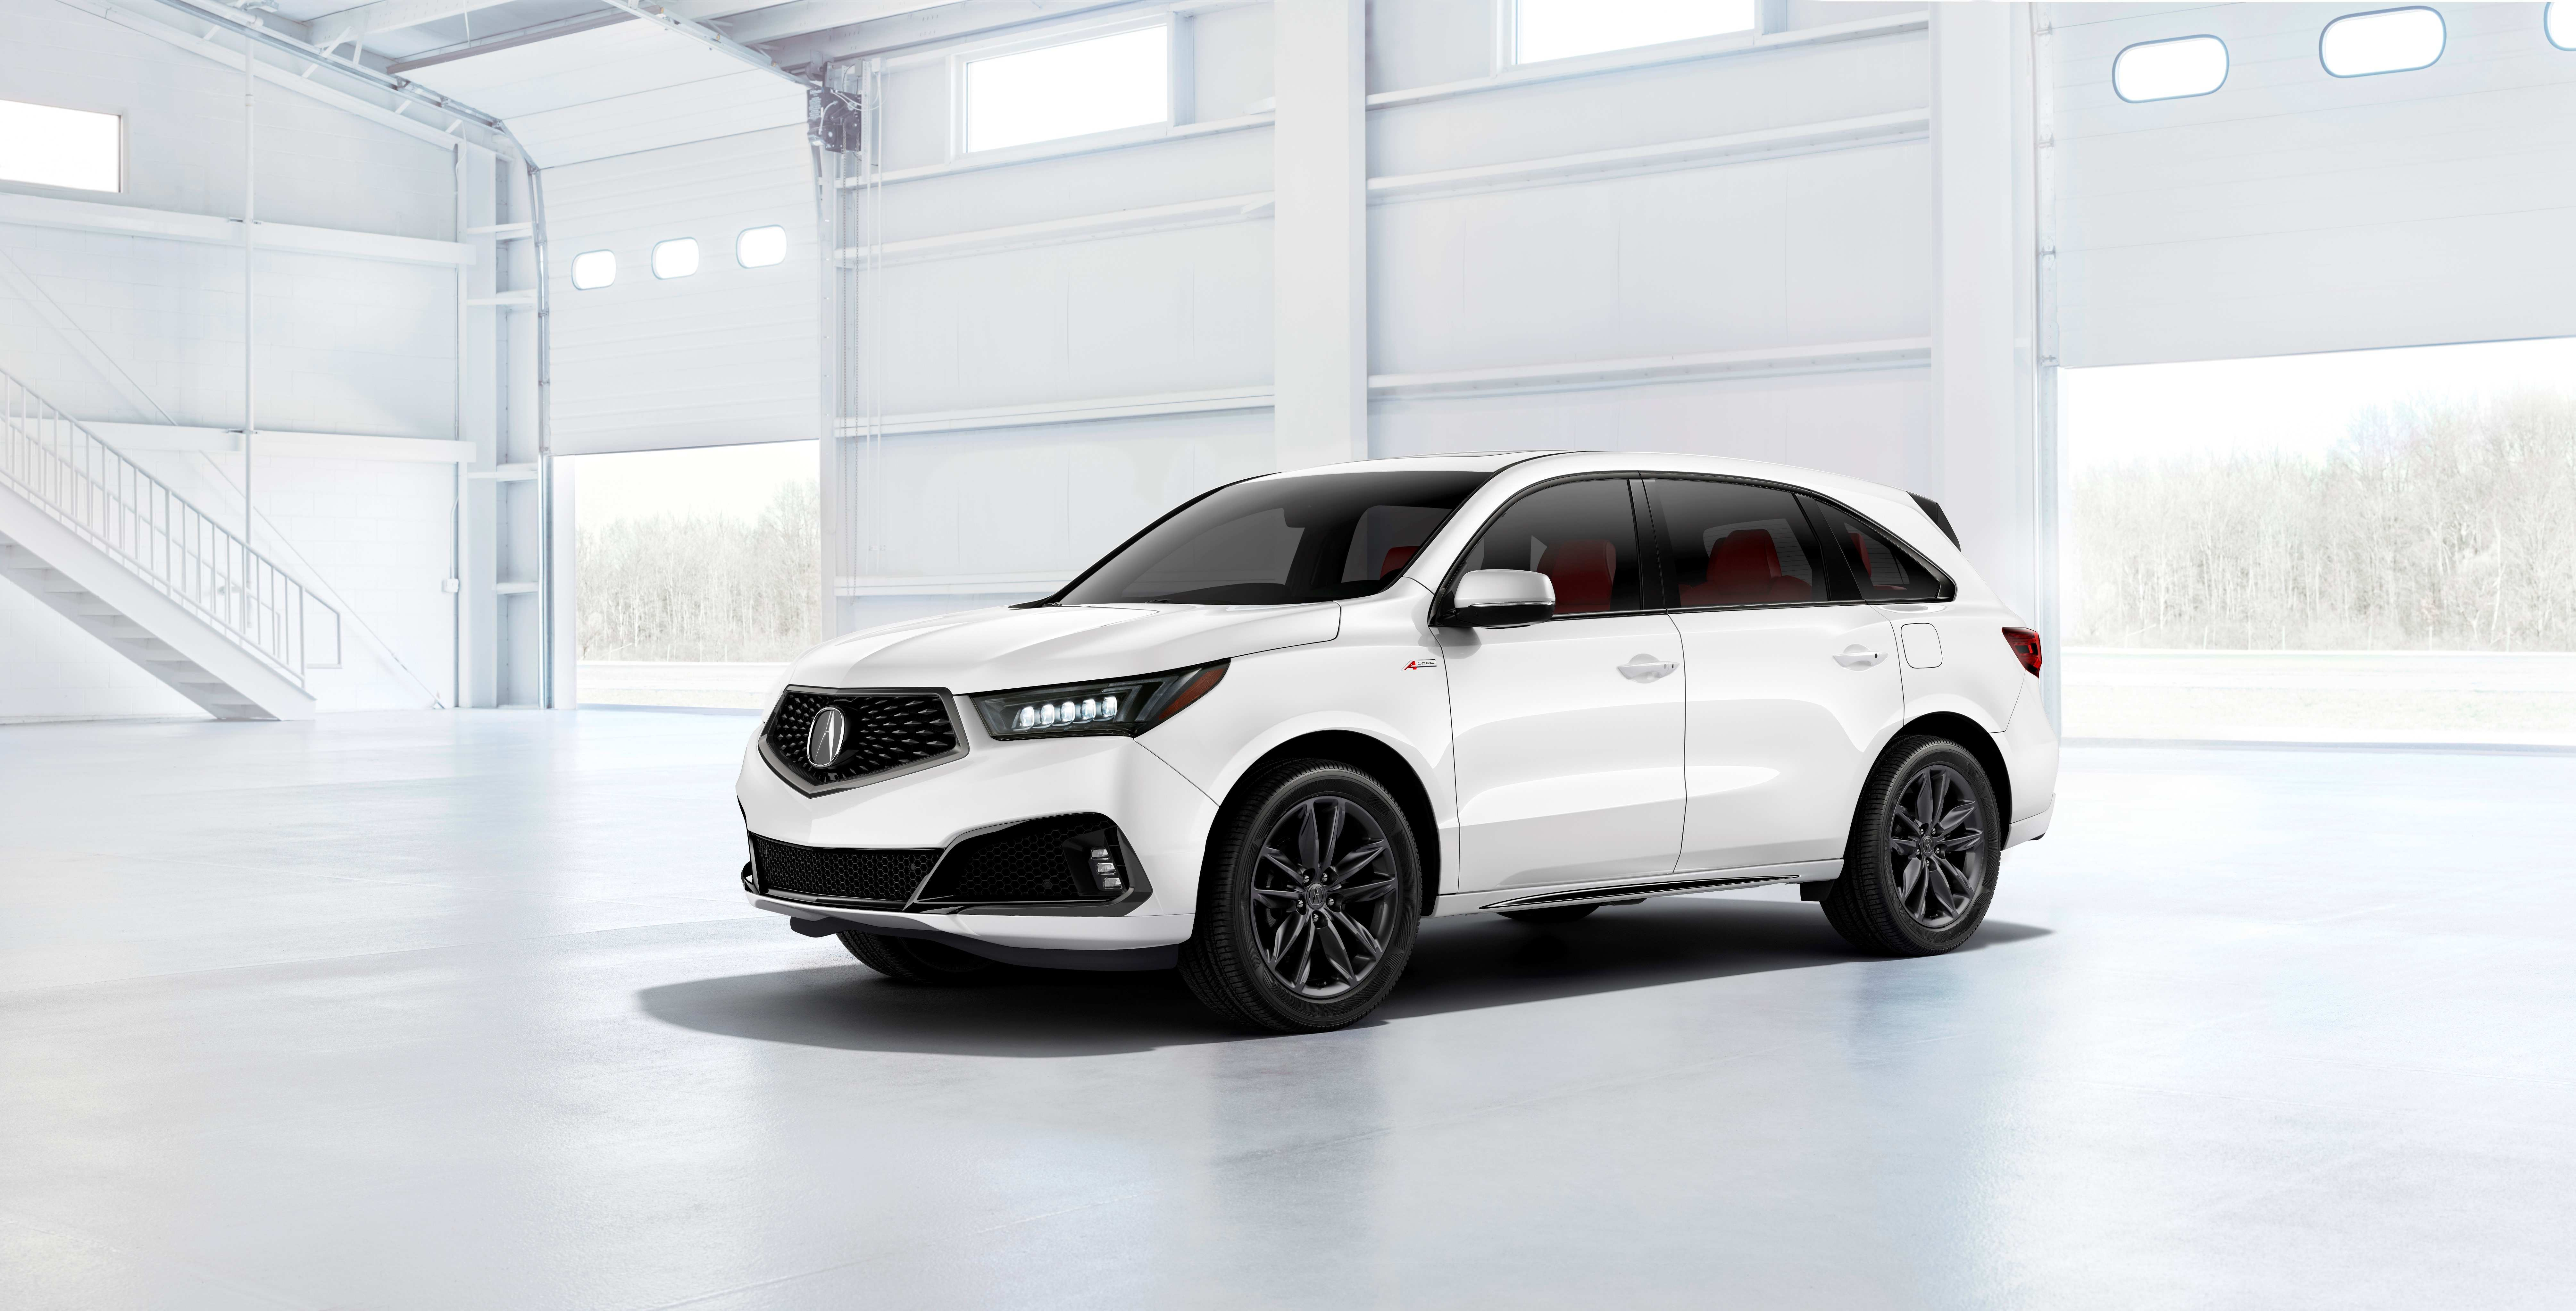 53 New Best 2019 Acura Rdx Aspec Price And Release Date History with Best 2019 Acura Rdx Aspec Price And Release Date